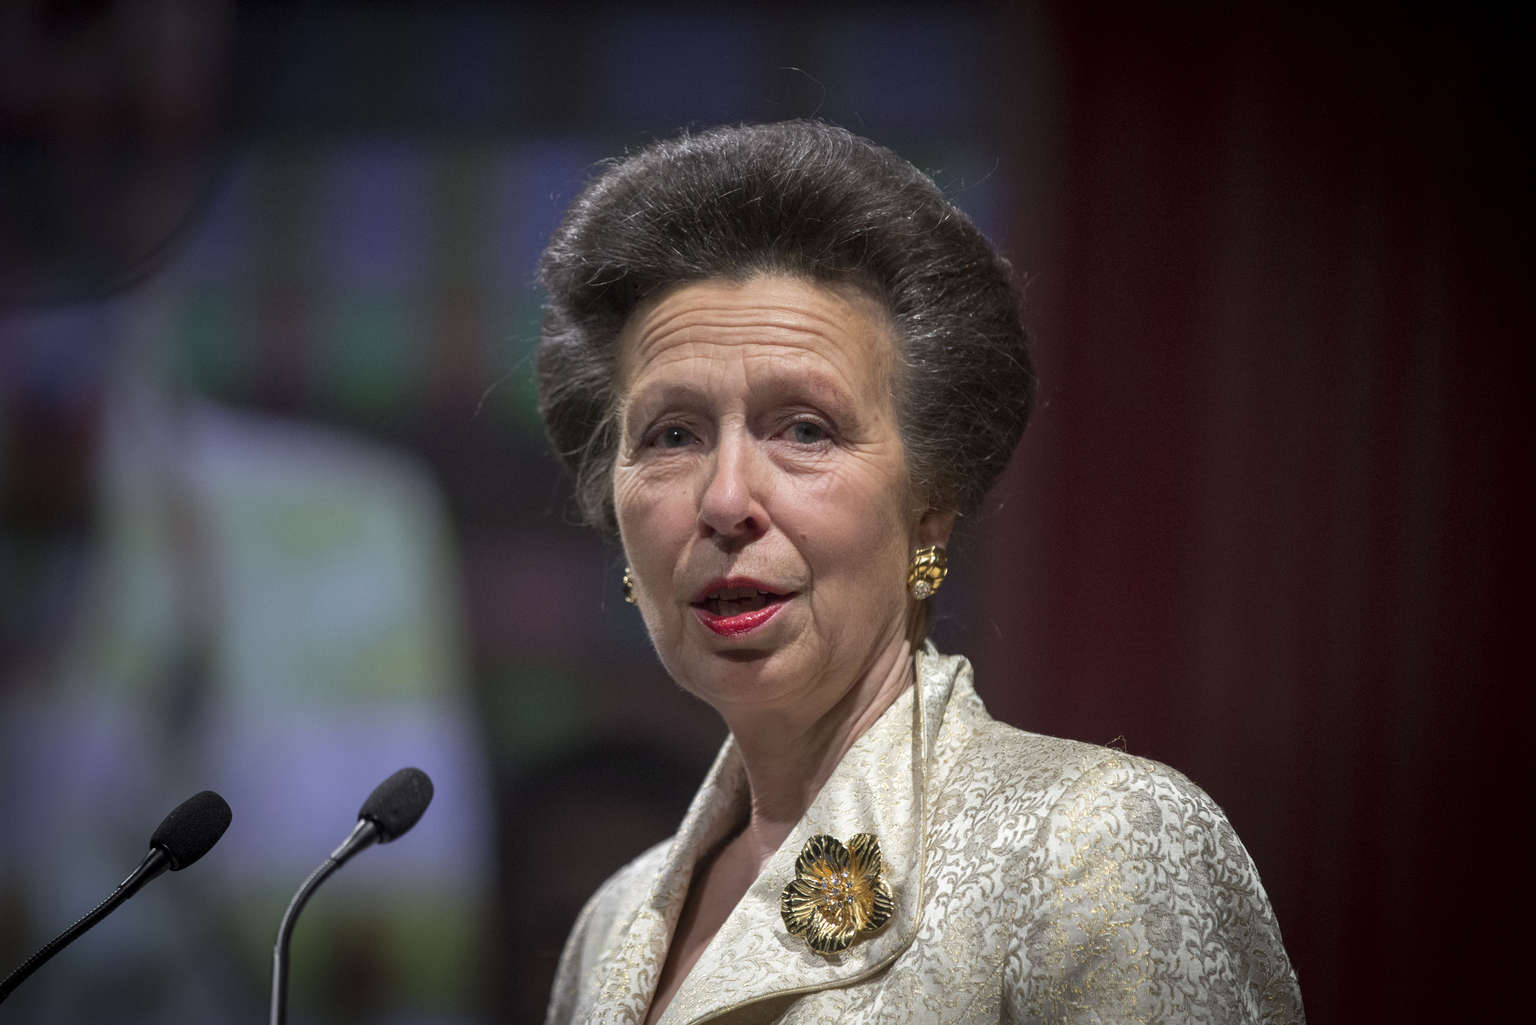 Princess Royal attends Save the Children UK's Centenary Dinner at Roundhouse